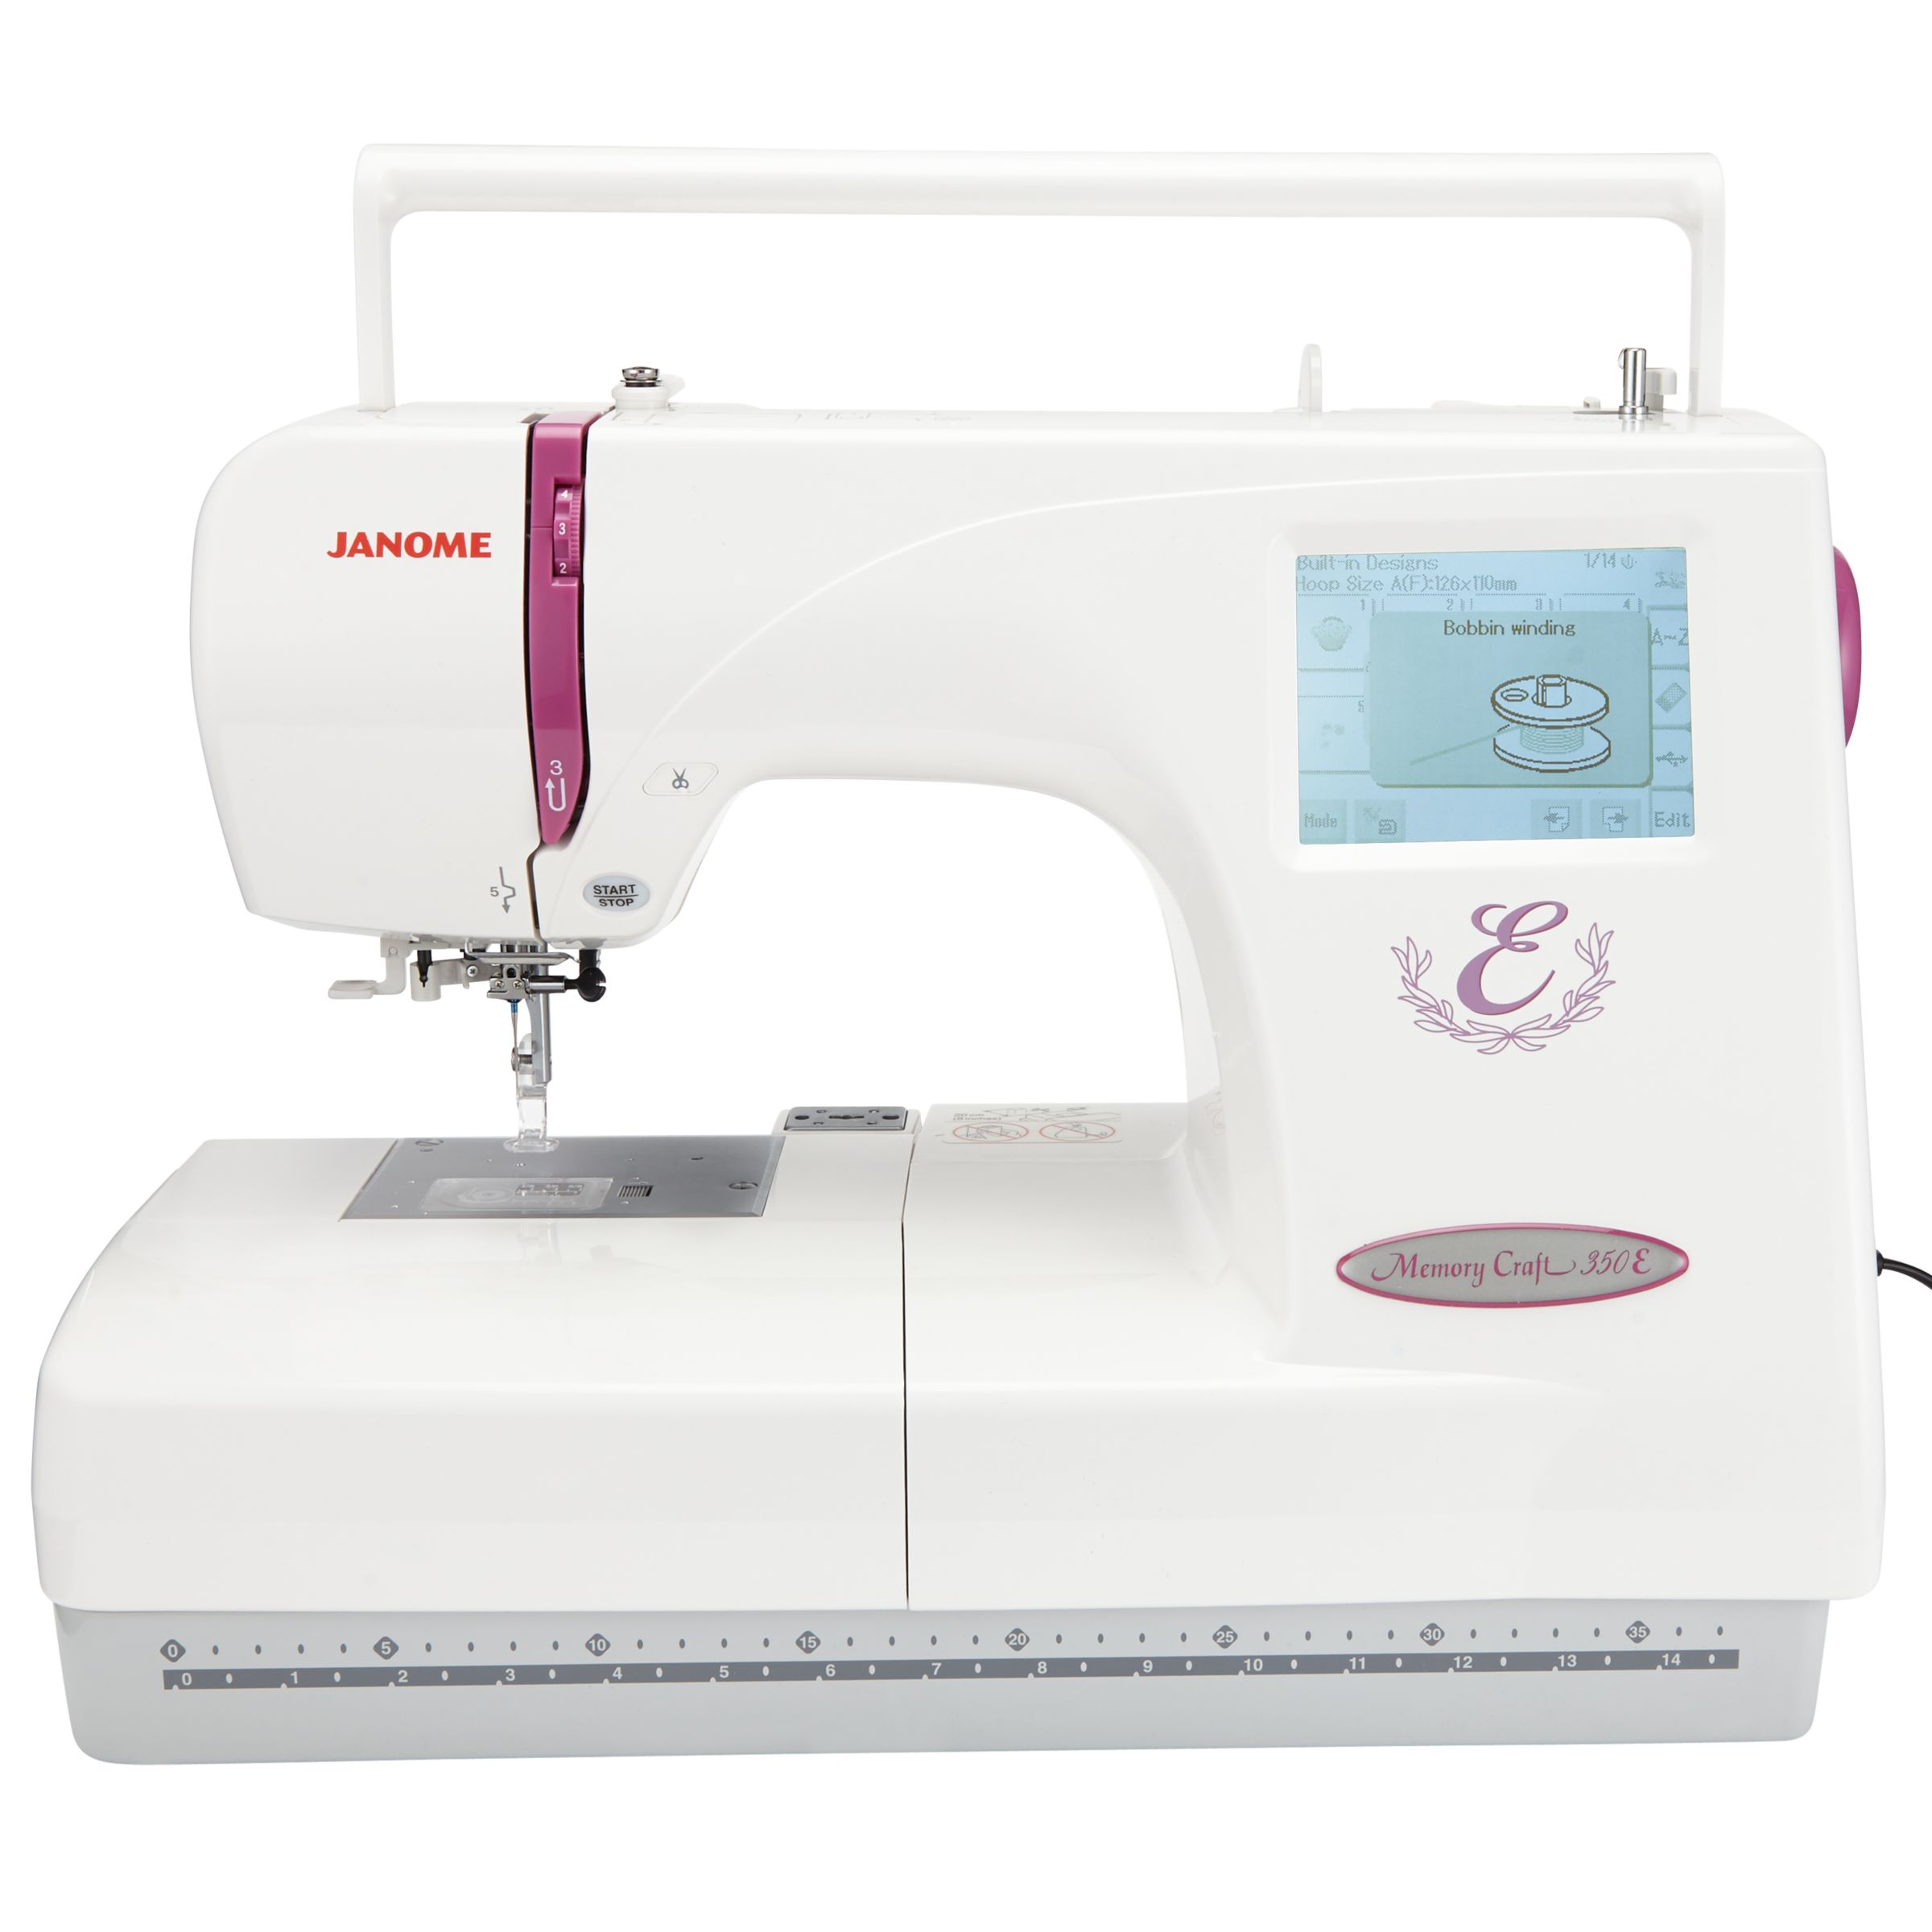 janome embroidery machine prices